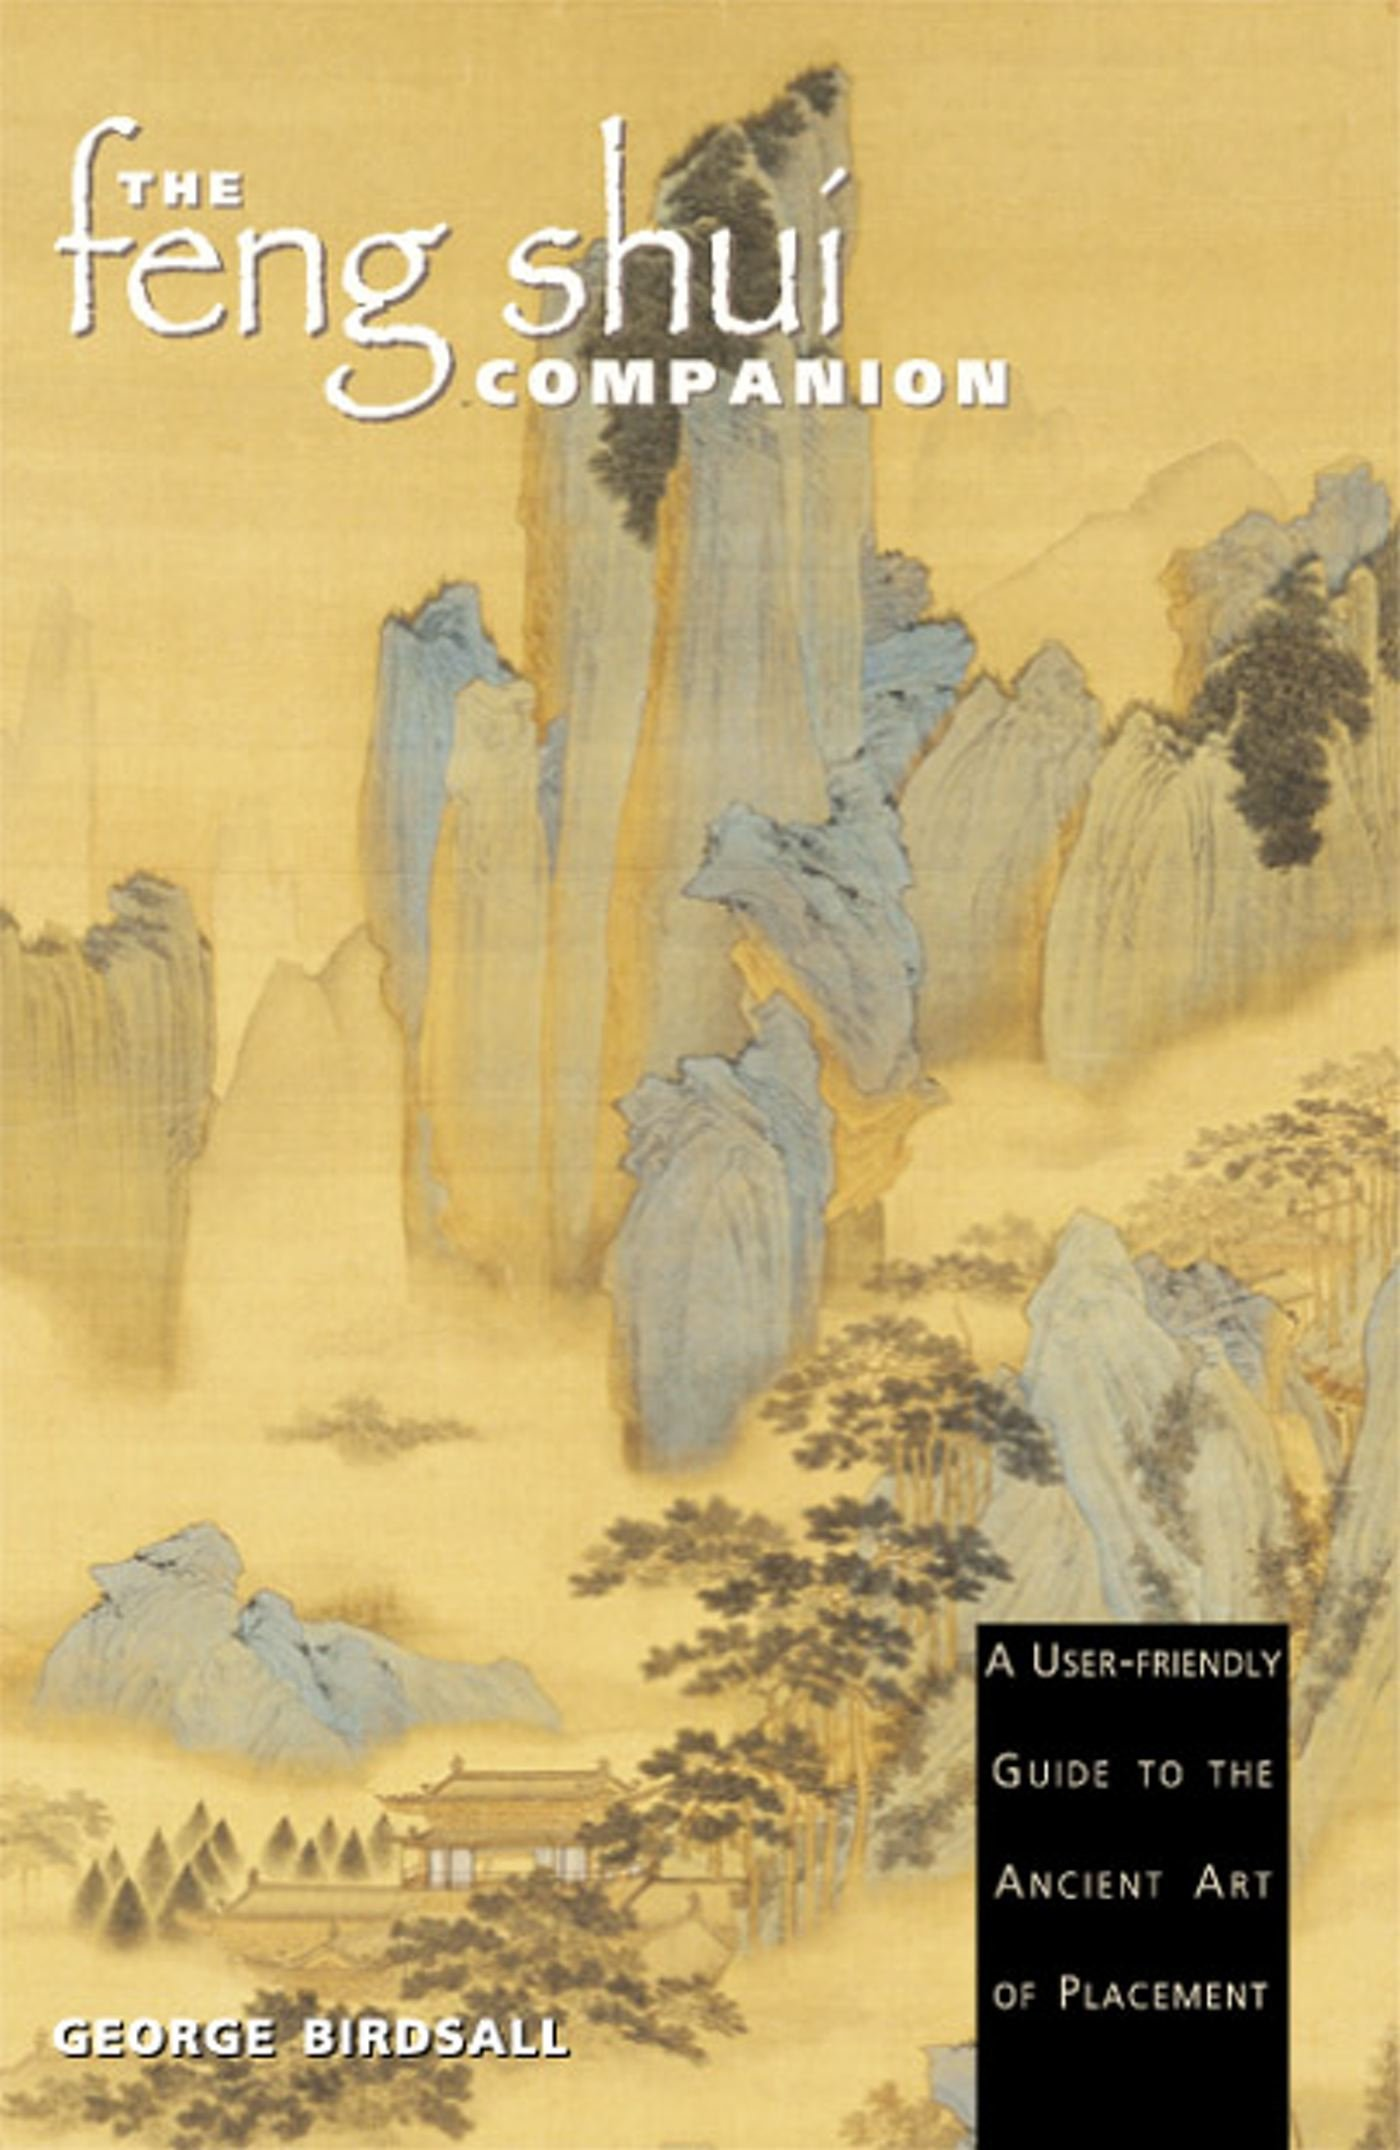 The Feng Shui Companion: A User-friendly Guide to the Ancient Art of Placement